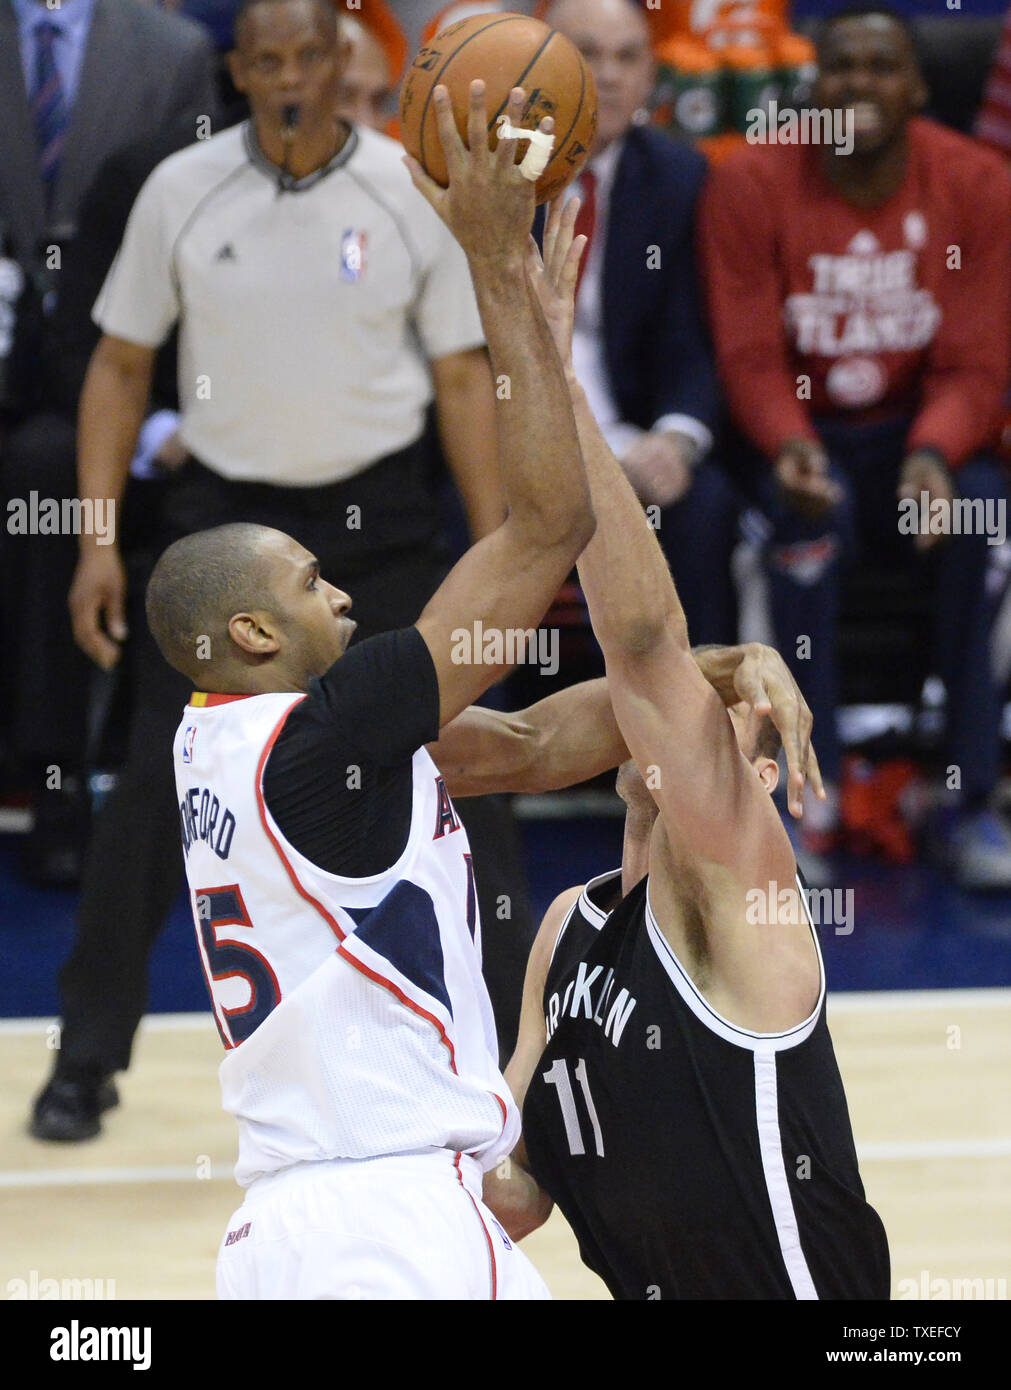 Atlanta Hawks' Al Horford (15) makes contact with Brooklyn Nets' Brook Lopez (11) as he shoots a basket during the first half of Game 2 in the NBA first round playoffs at Philips Arena in Atlanta, April 22, 2015. Photo by David Tulis/UPI Stock Photo